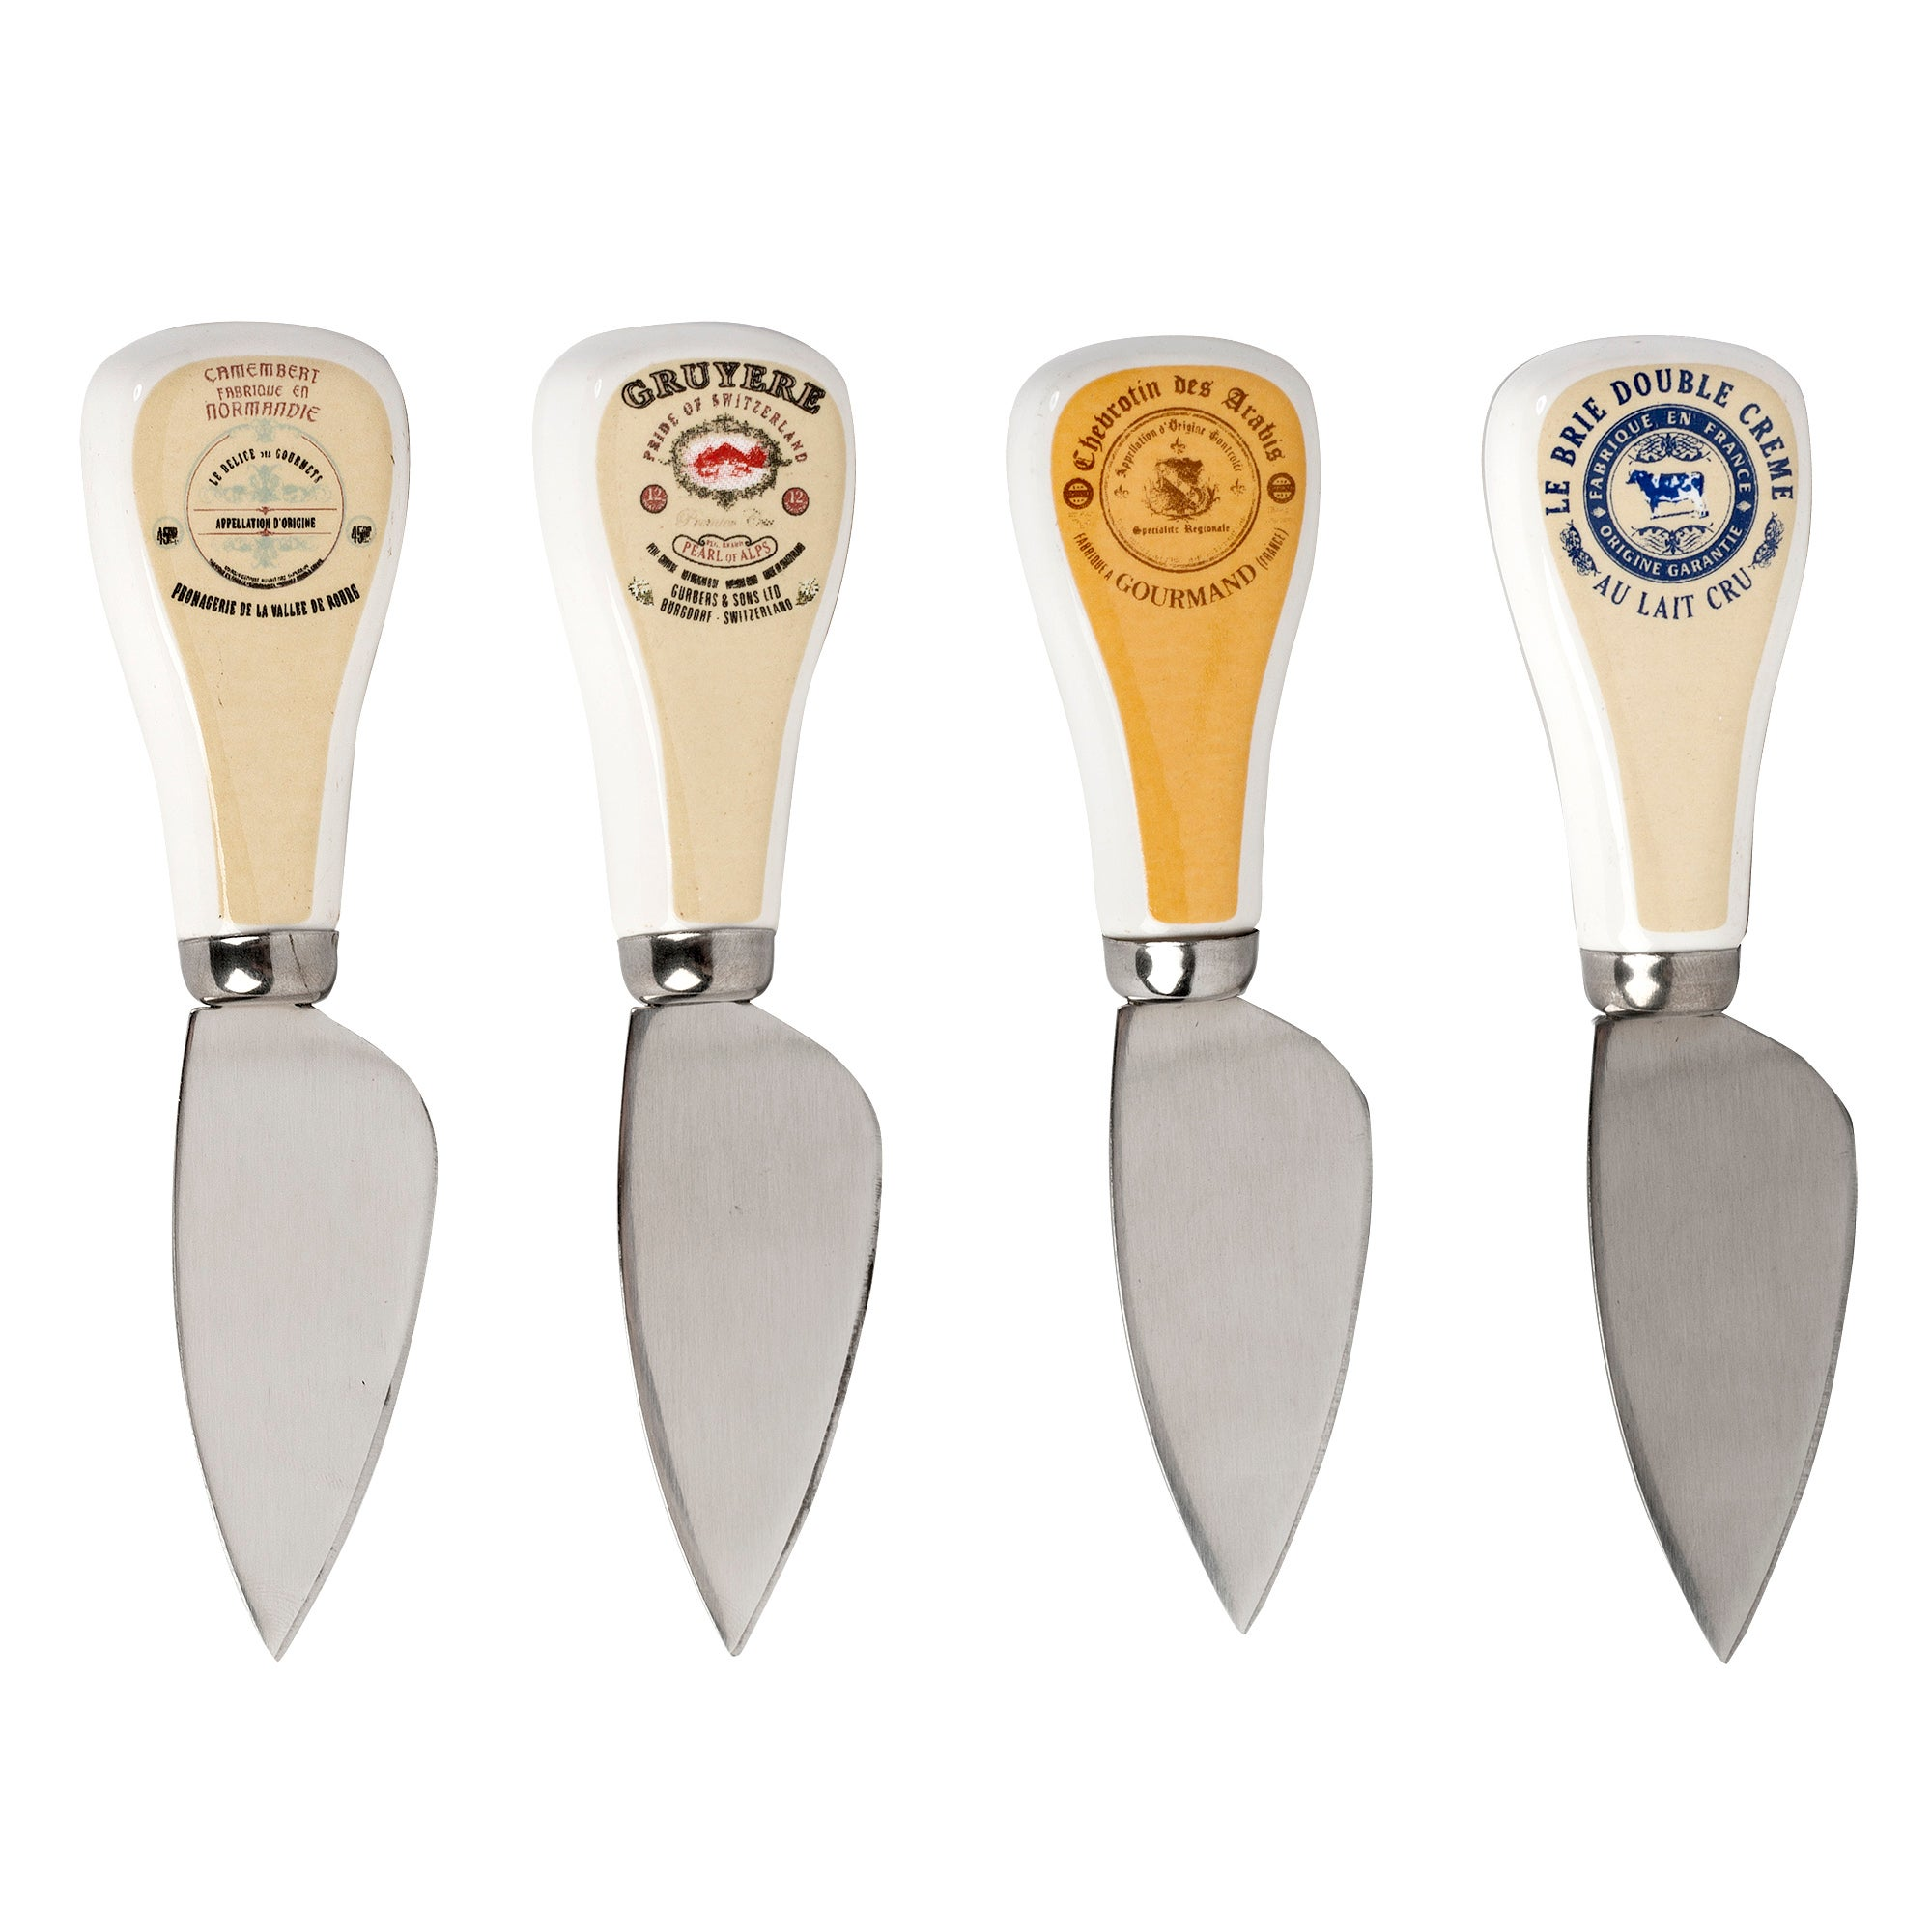 Photo of Gourmet set of 4 cheese knives silver